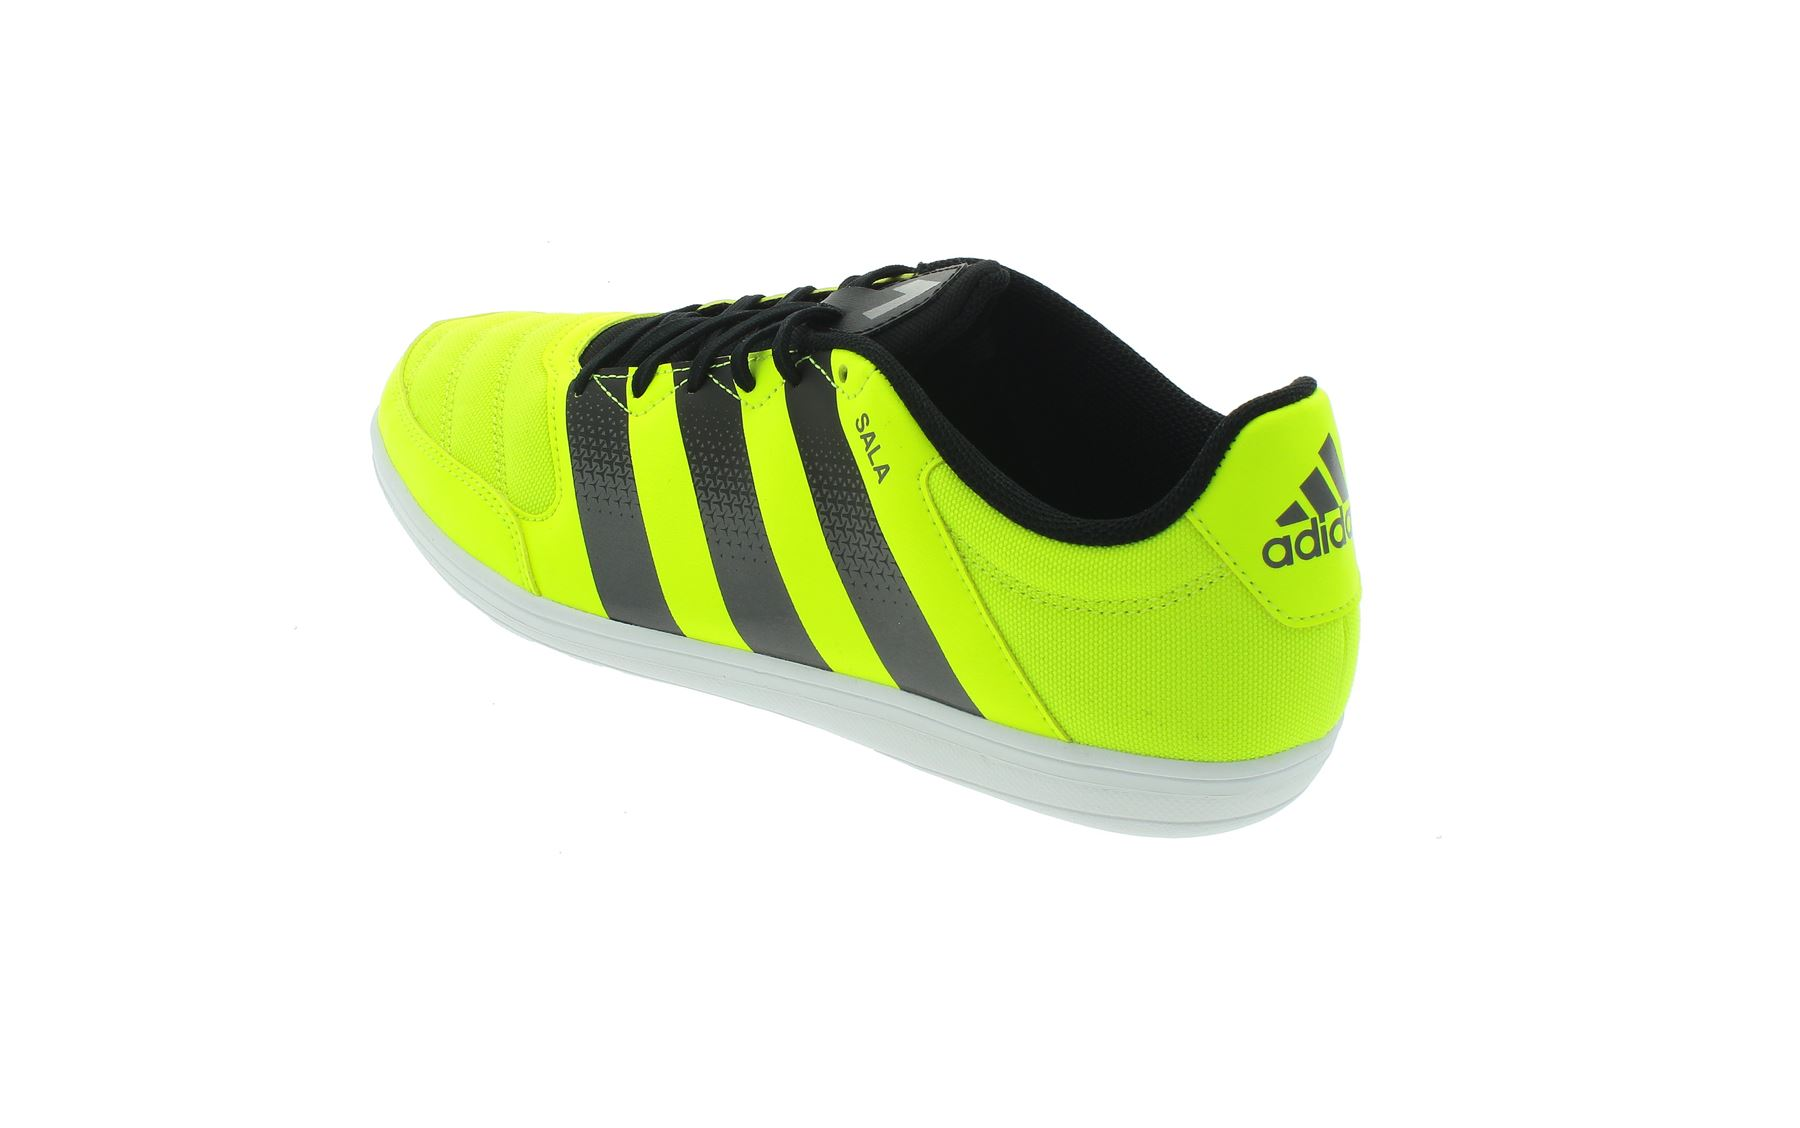 buy online 4c943 9591e ... adidas Ace 16.4 Street Indoor Football Shoes Mens Yellow Black Soccer  Trainers